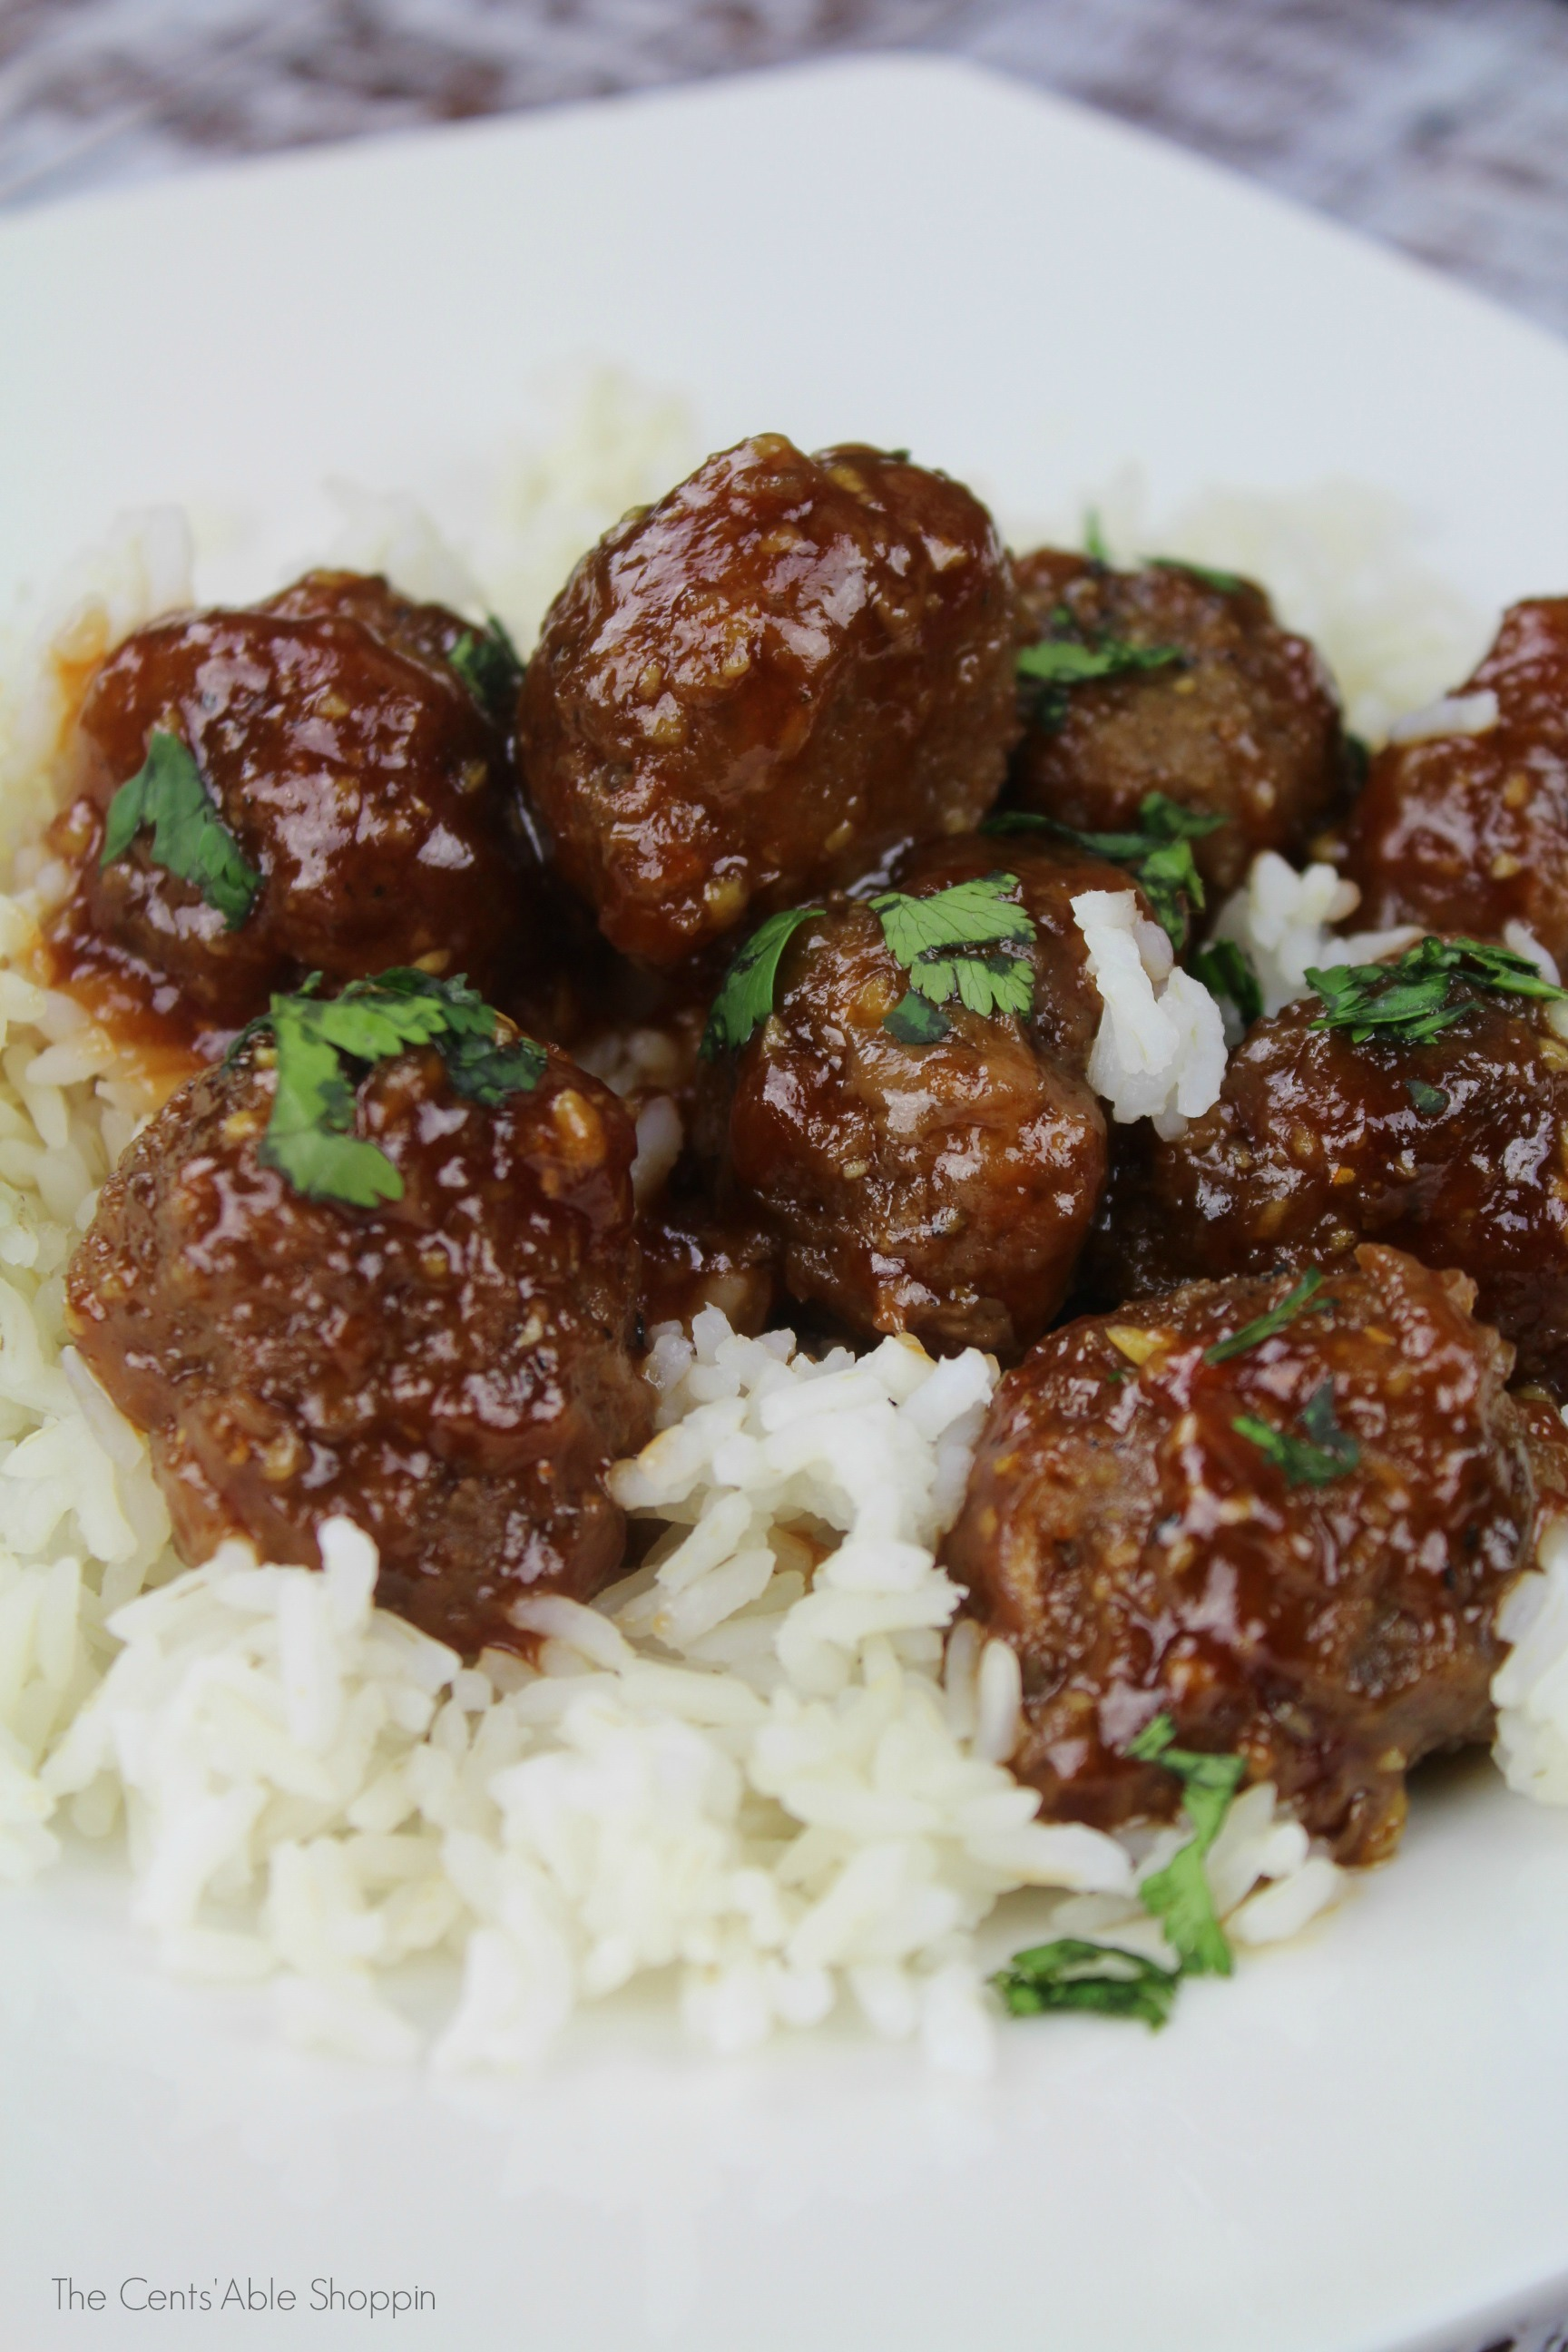 These Garlic Honey Meatballs are easy to whip up and are wrapped in a delectable sauce that's delicious over rice or served as an appetizer!